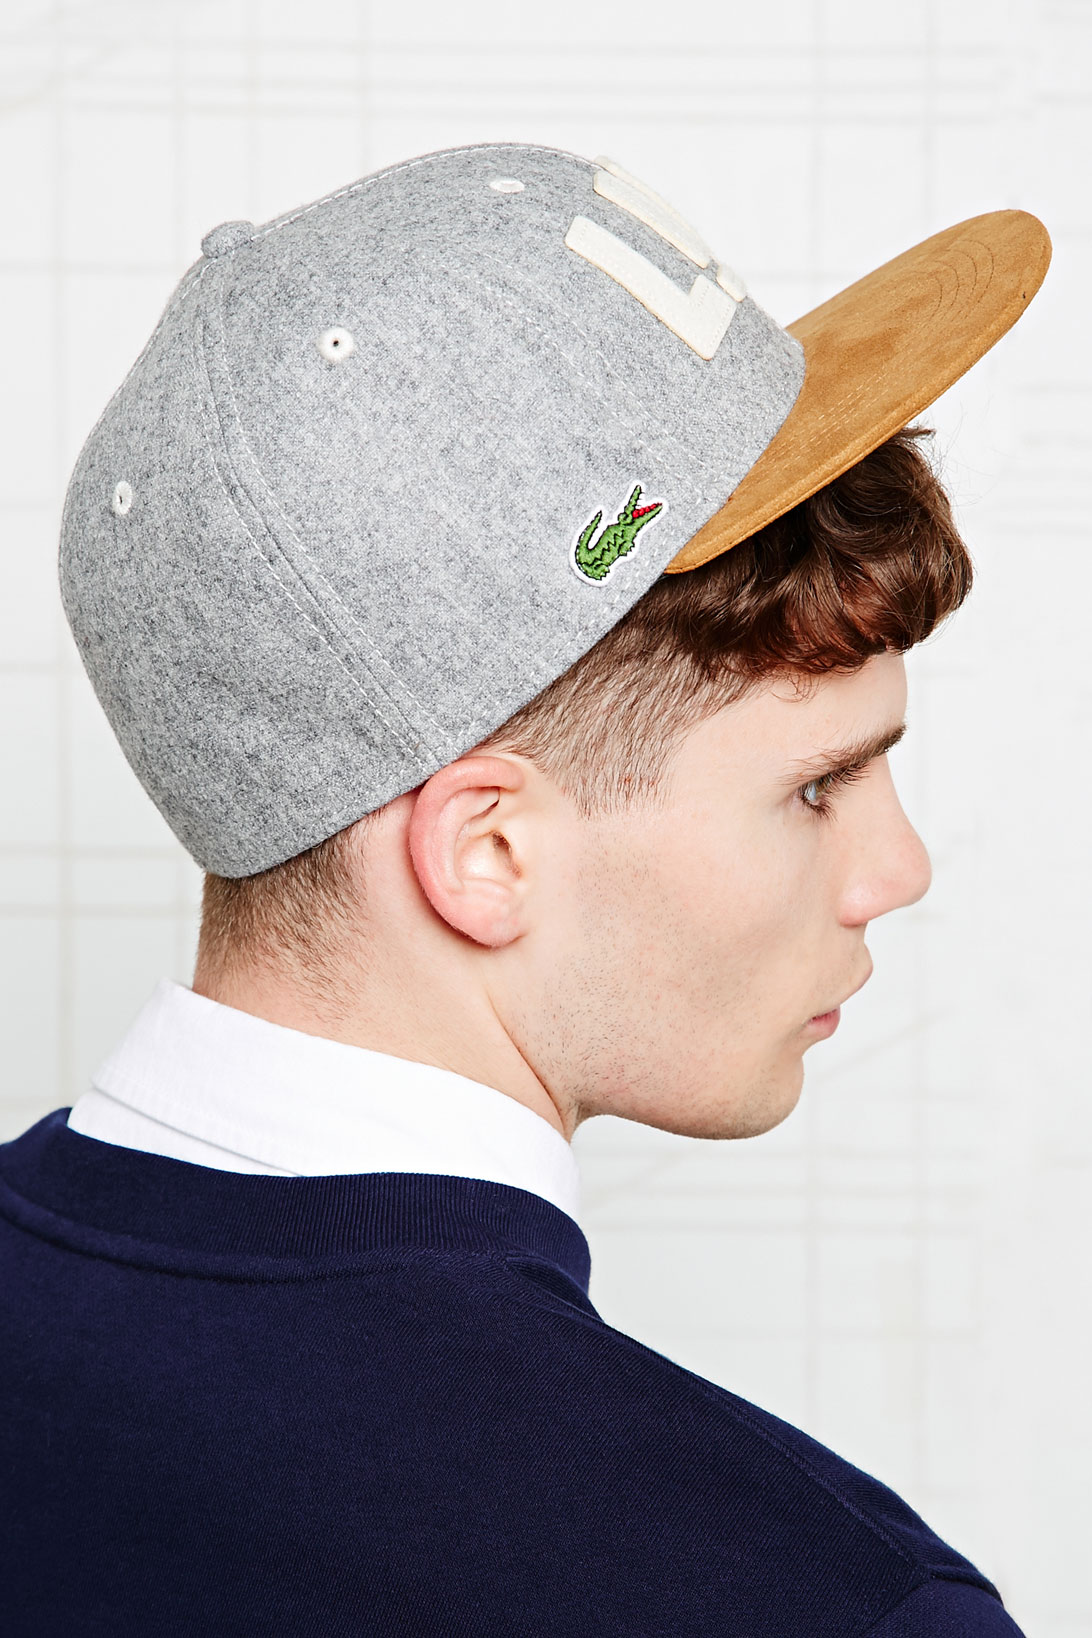 Lacoste Lacoste Snapback Cap in Grey in Gray for Men - Lyst 65f9e81f0f2